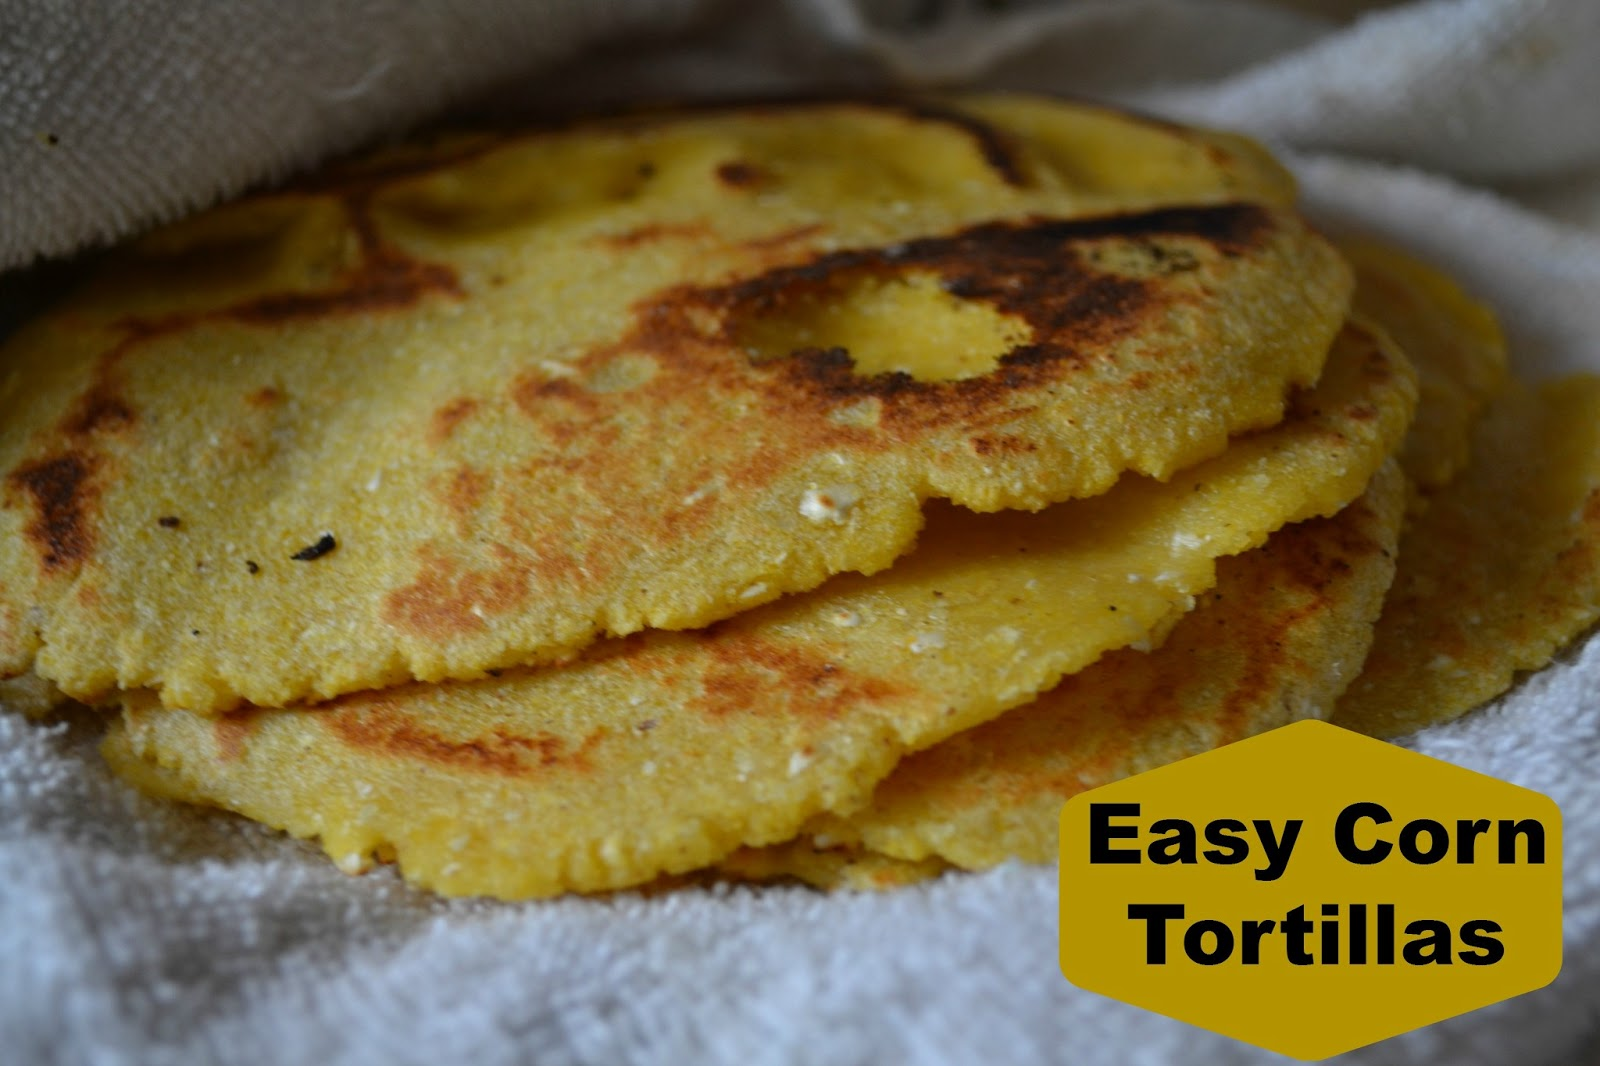 Homemade Corn Tortillas - Just Take A Bite